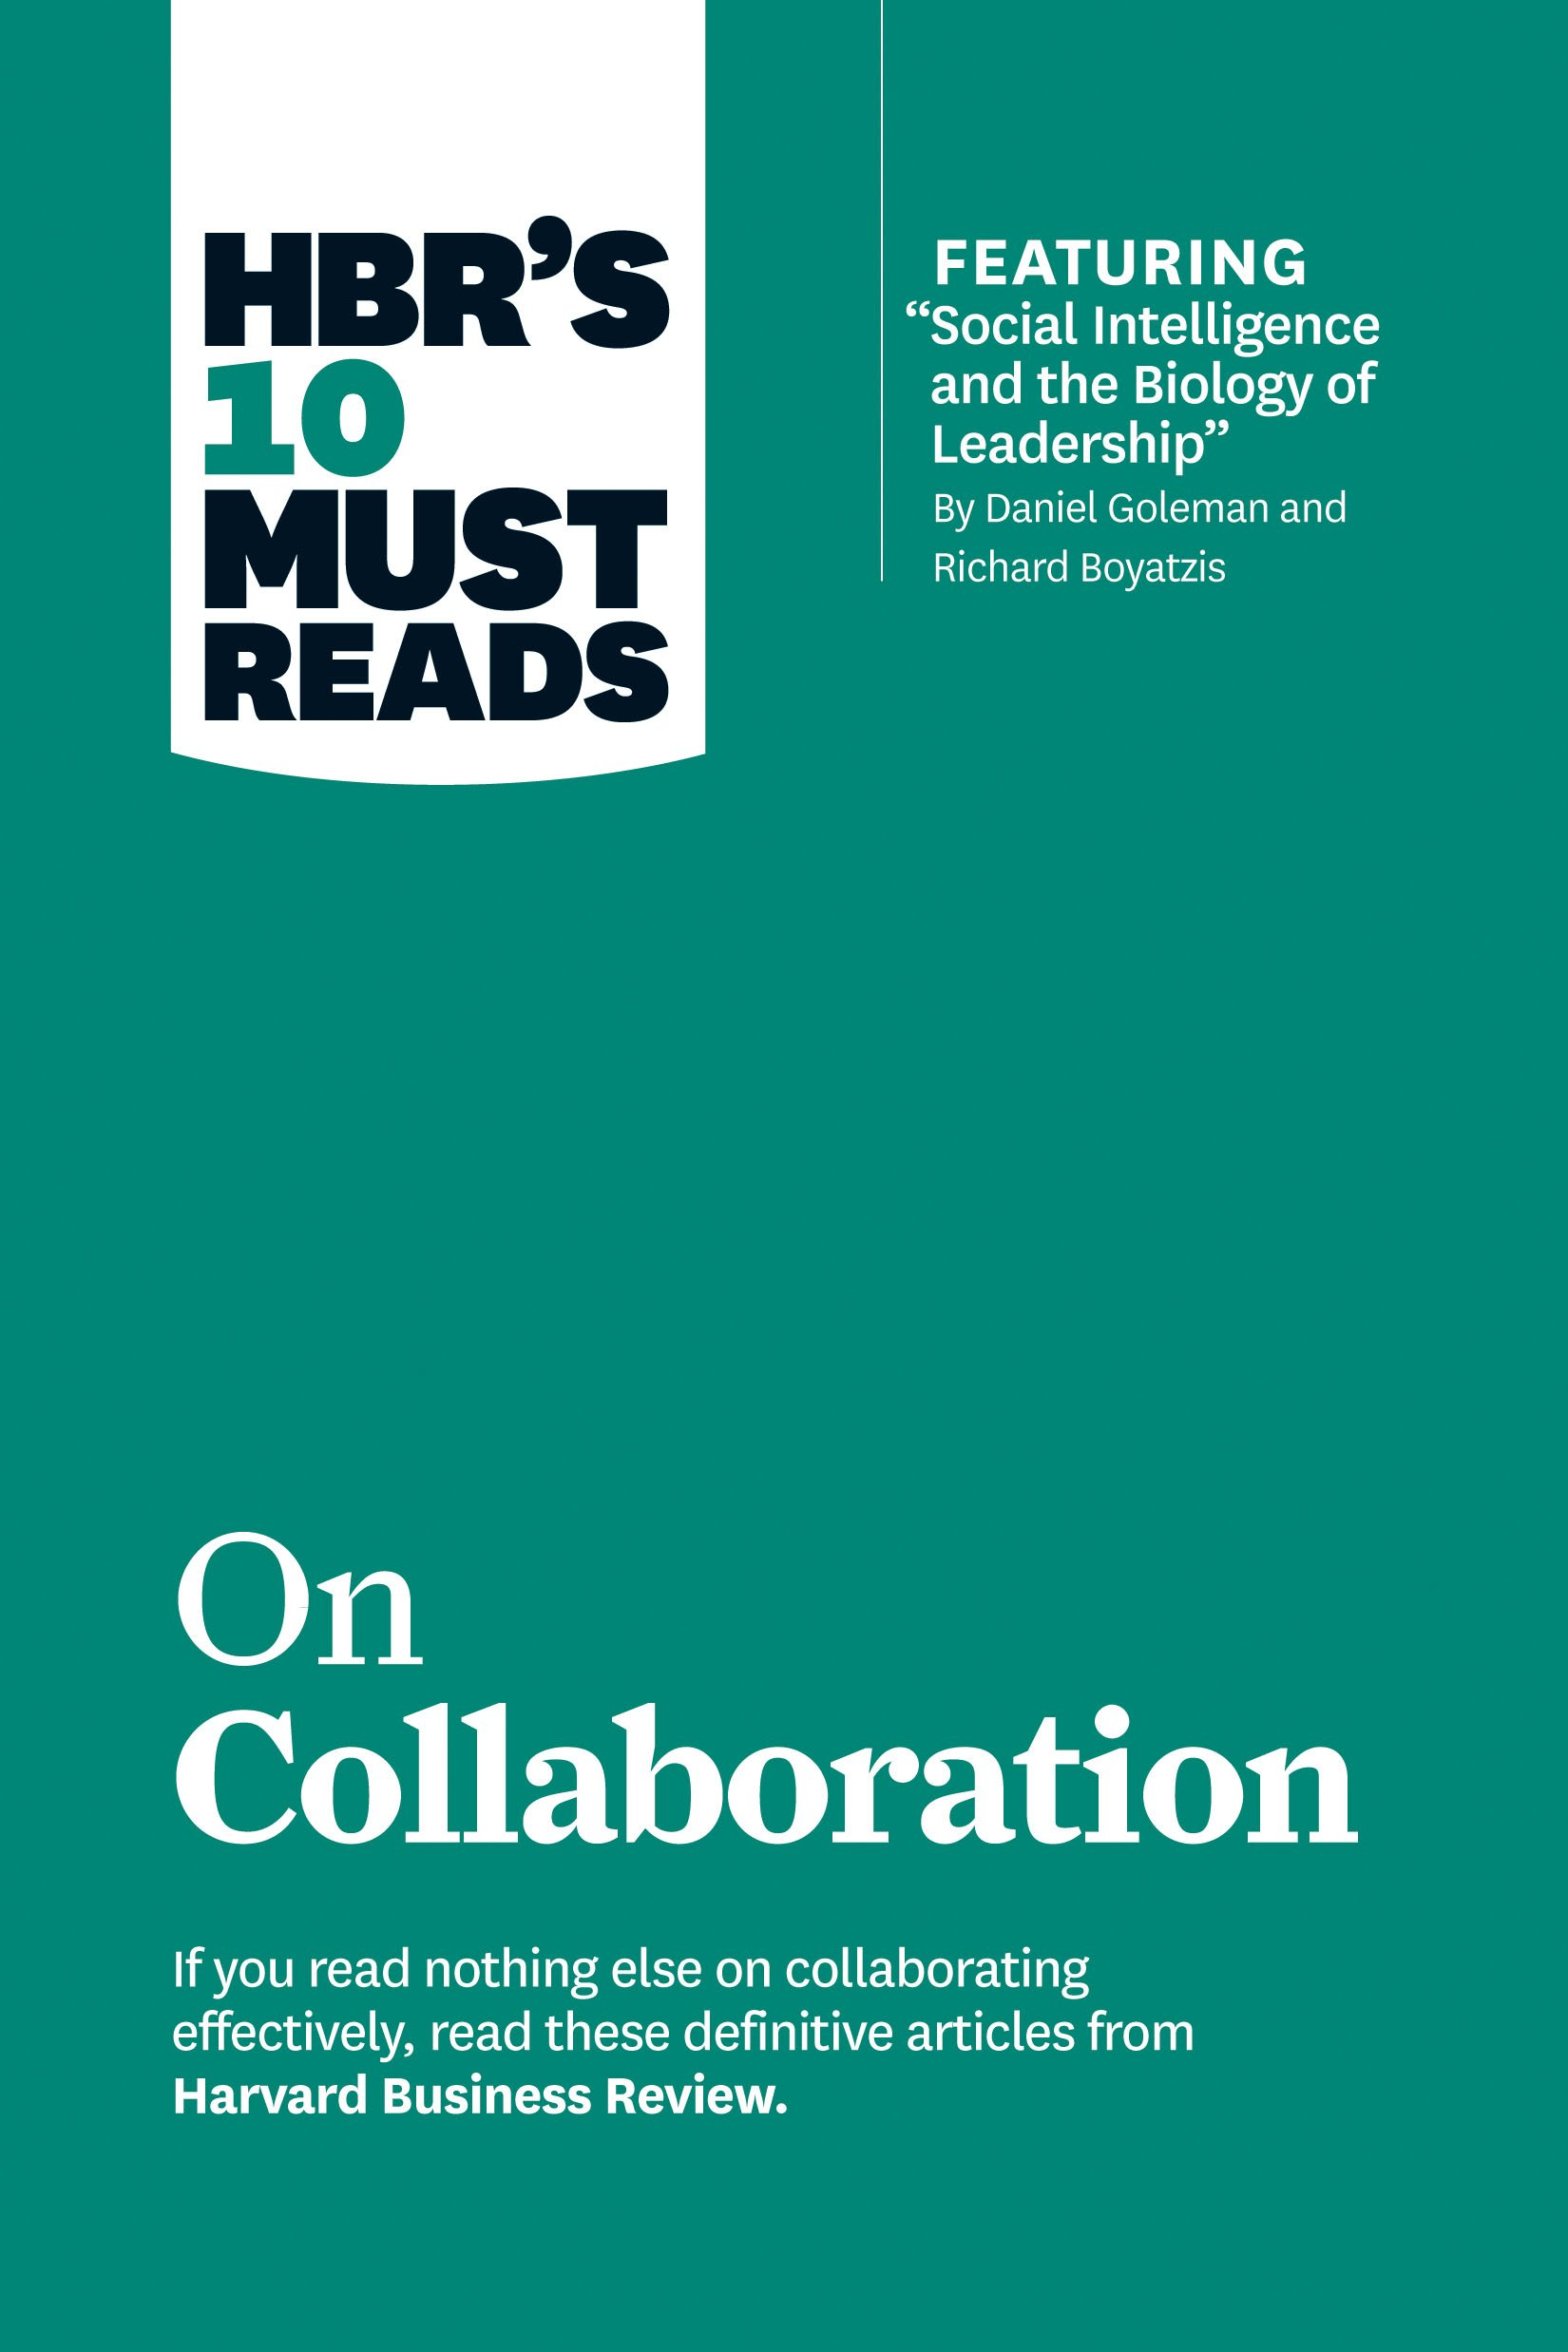 HBRs 10 Must Reads on Collaboration